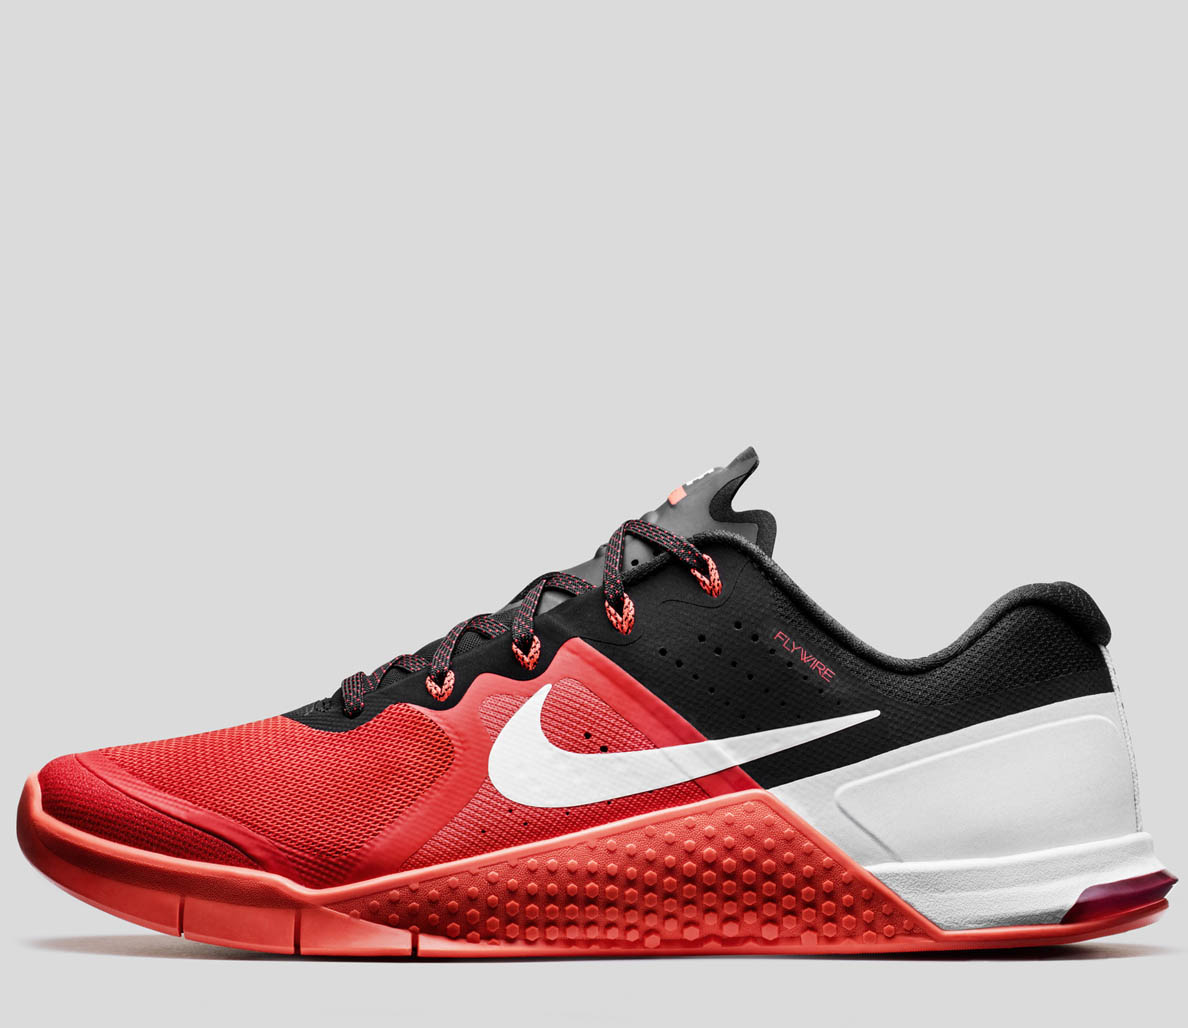 9dfd91e6267a 5 Things You Need to Know About the New Nike MetCon